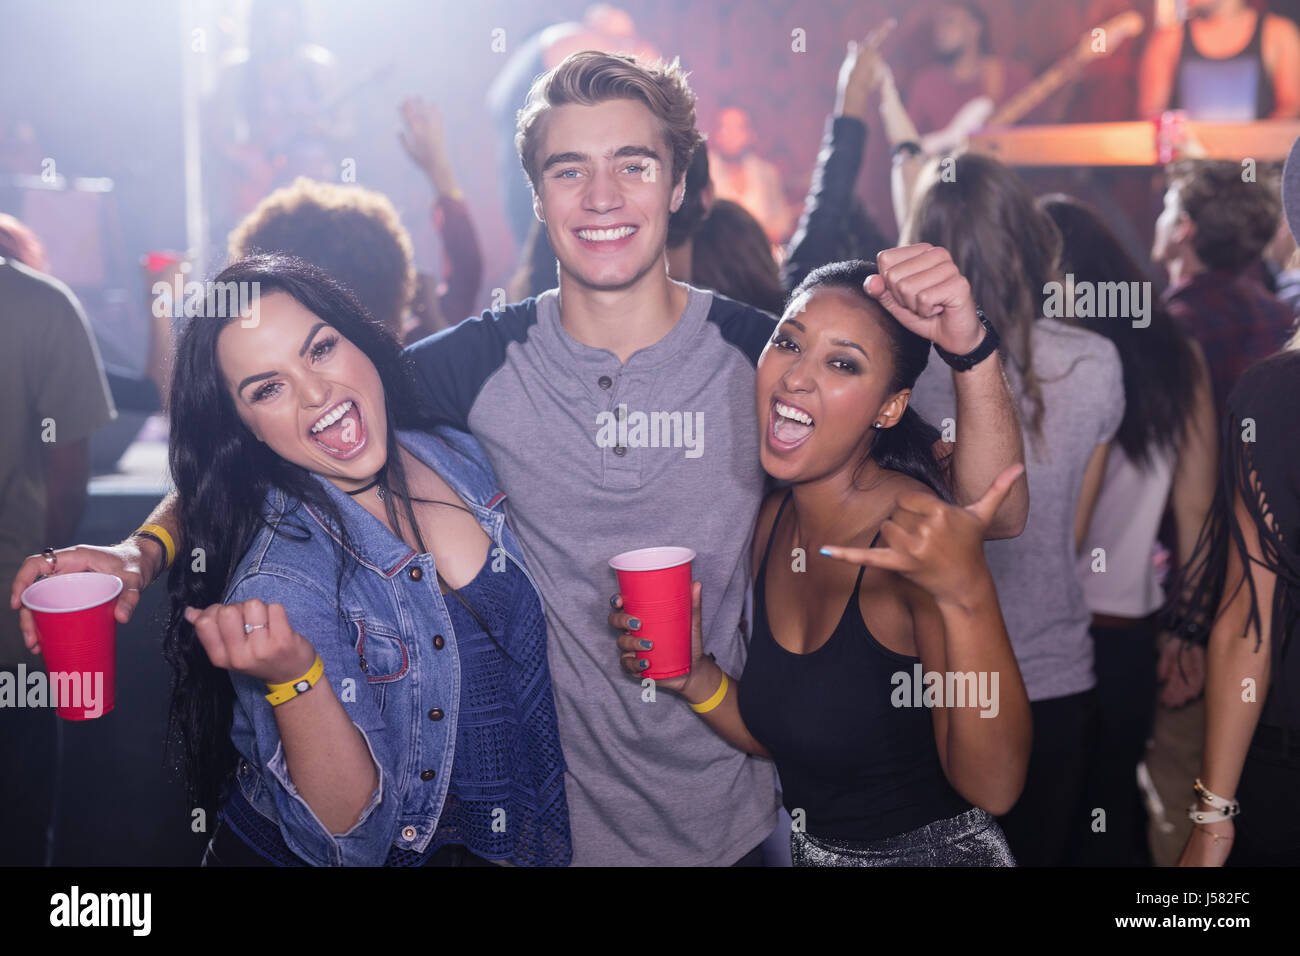 Portrait of cheerful friends holding disposable cups while standing at nightclub - Stock Image